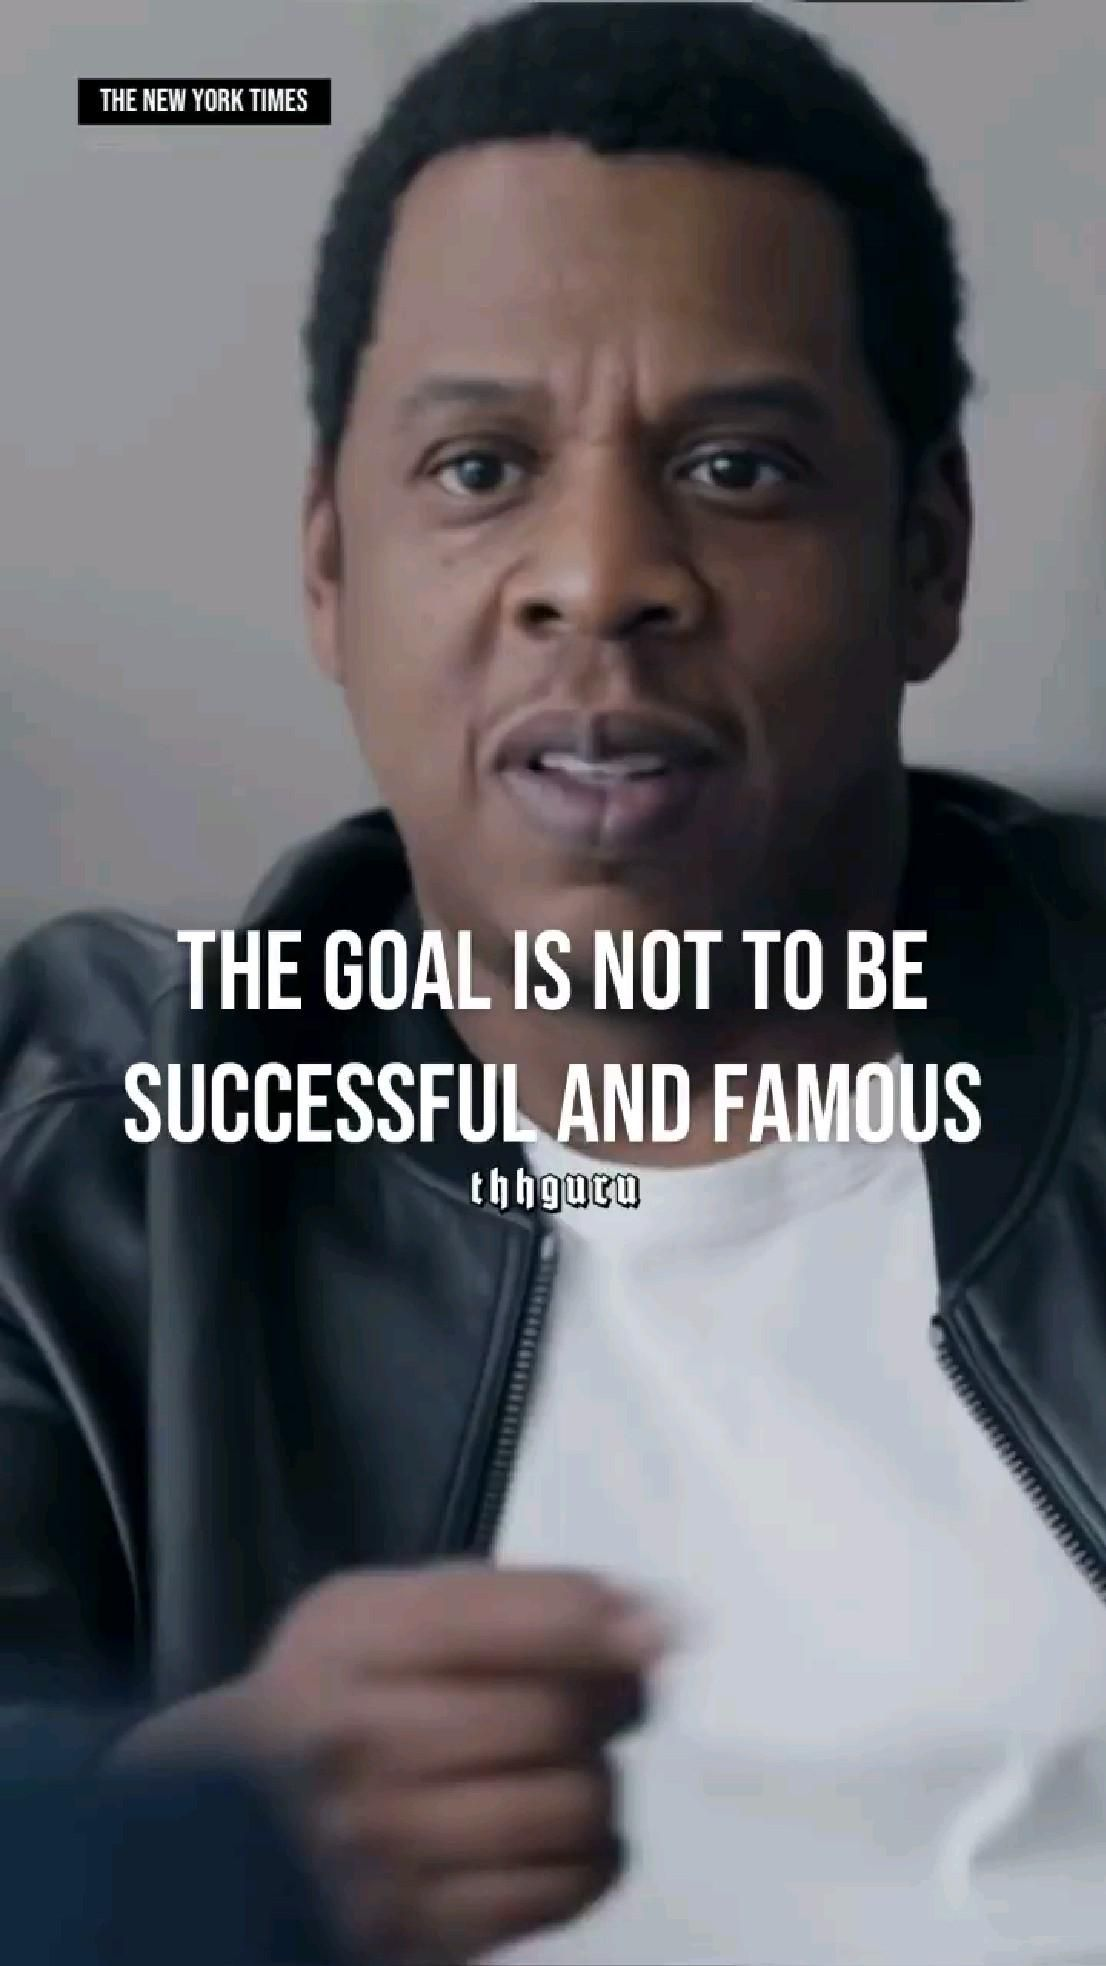 What is your goal? Check out what Jay-Z says.